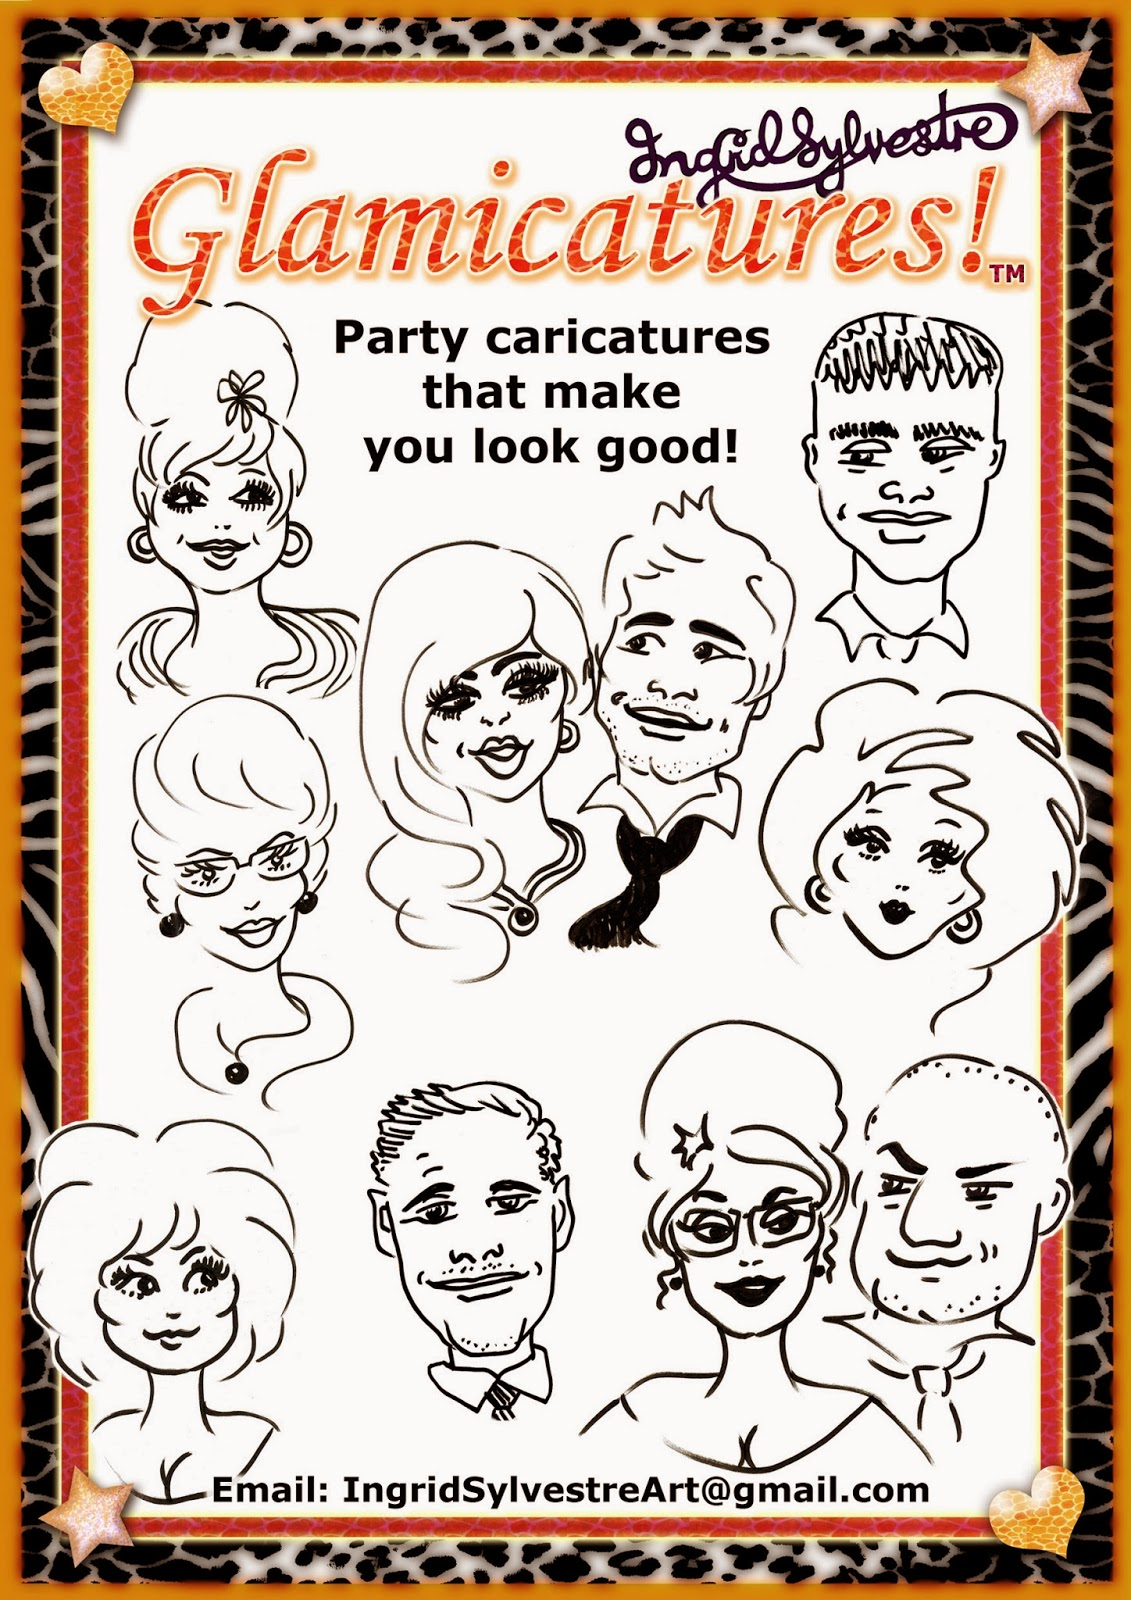 Ingrid Sylvestre Glamicatures TM - Party caricatures that make you look good!